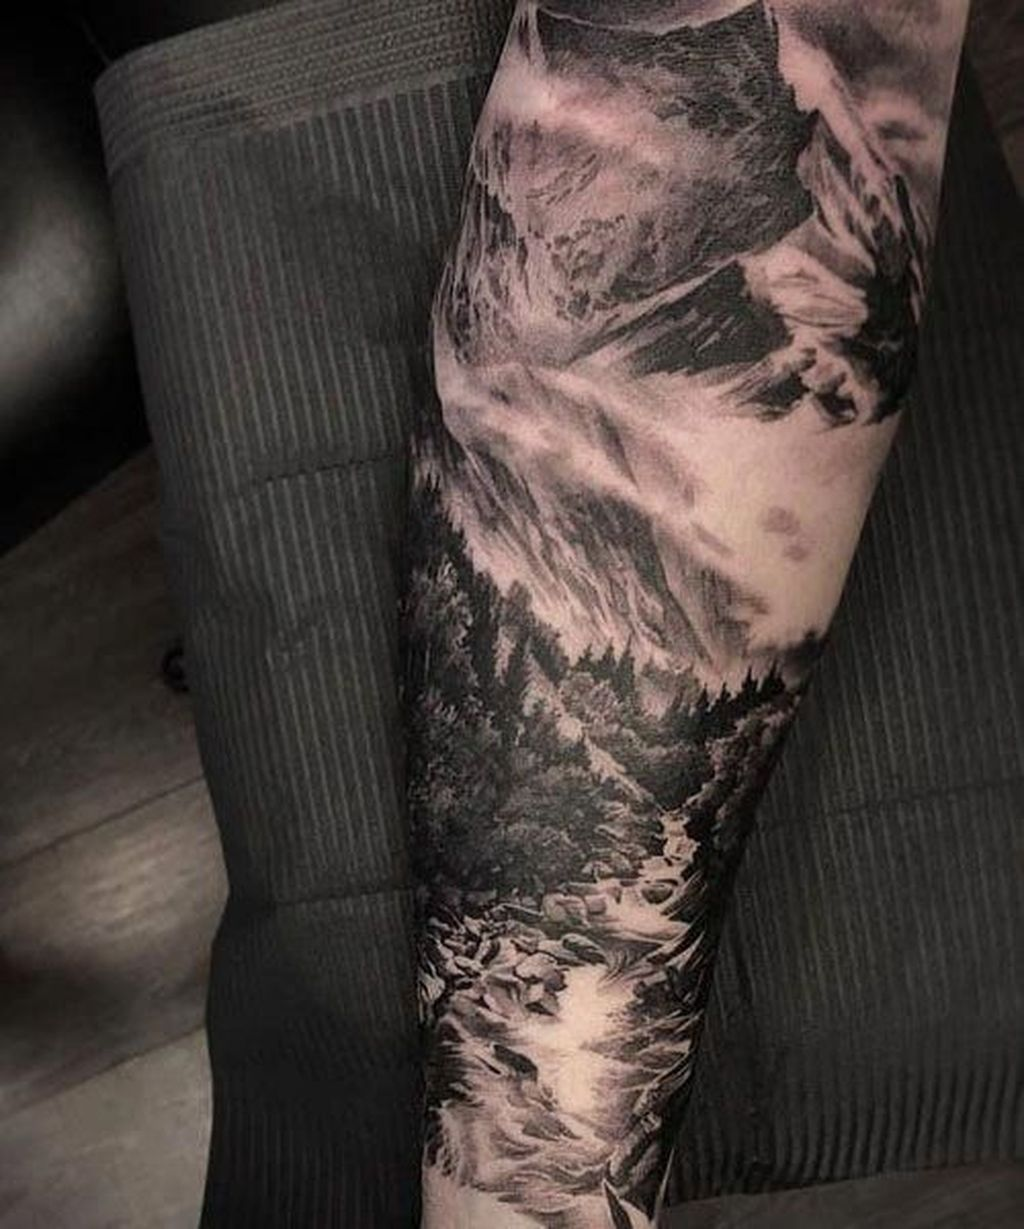 49 Gorgeous Arm Tattoo Design Ideas For Men That Looks Cool is part of Cool arm tattoos - One of the most popular accessories for a man these days has to be upper arm tattoo designs  They show[…]